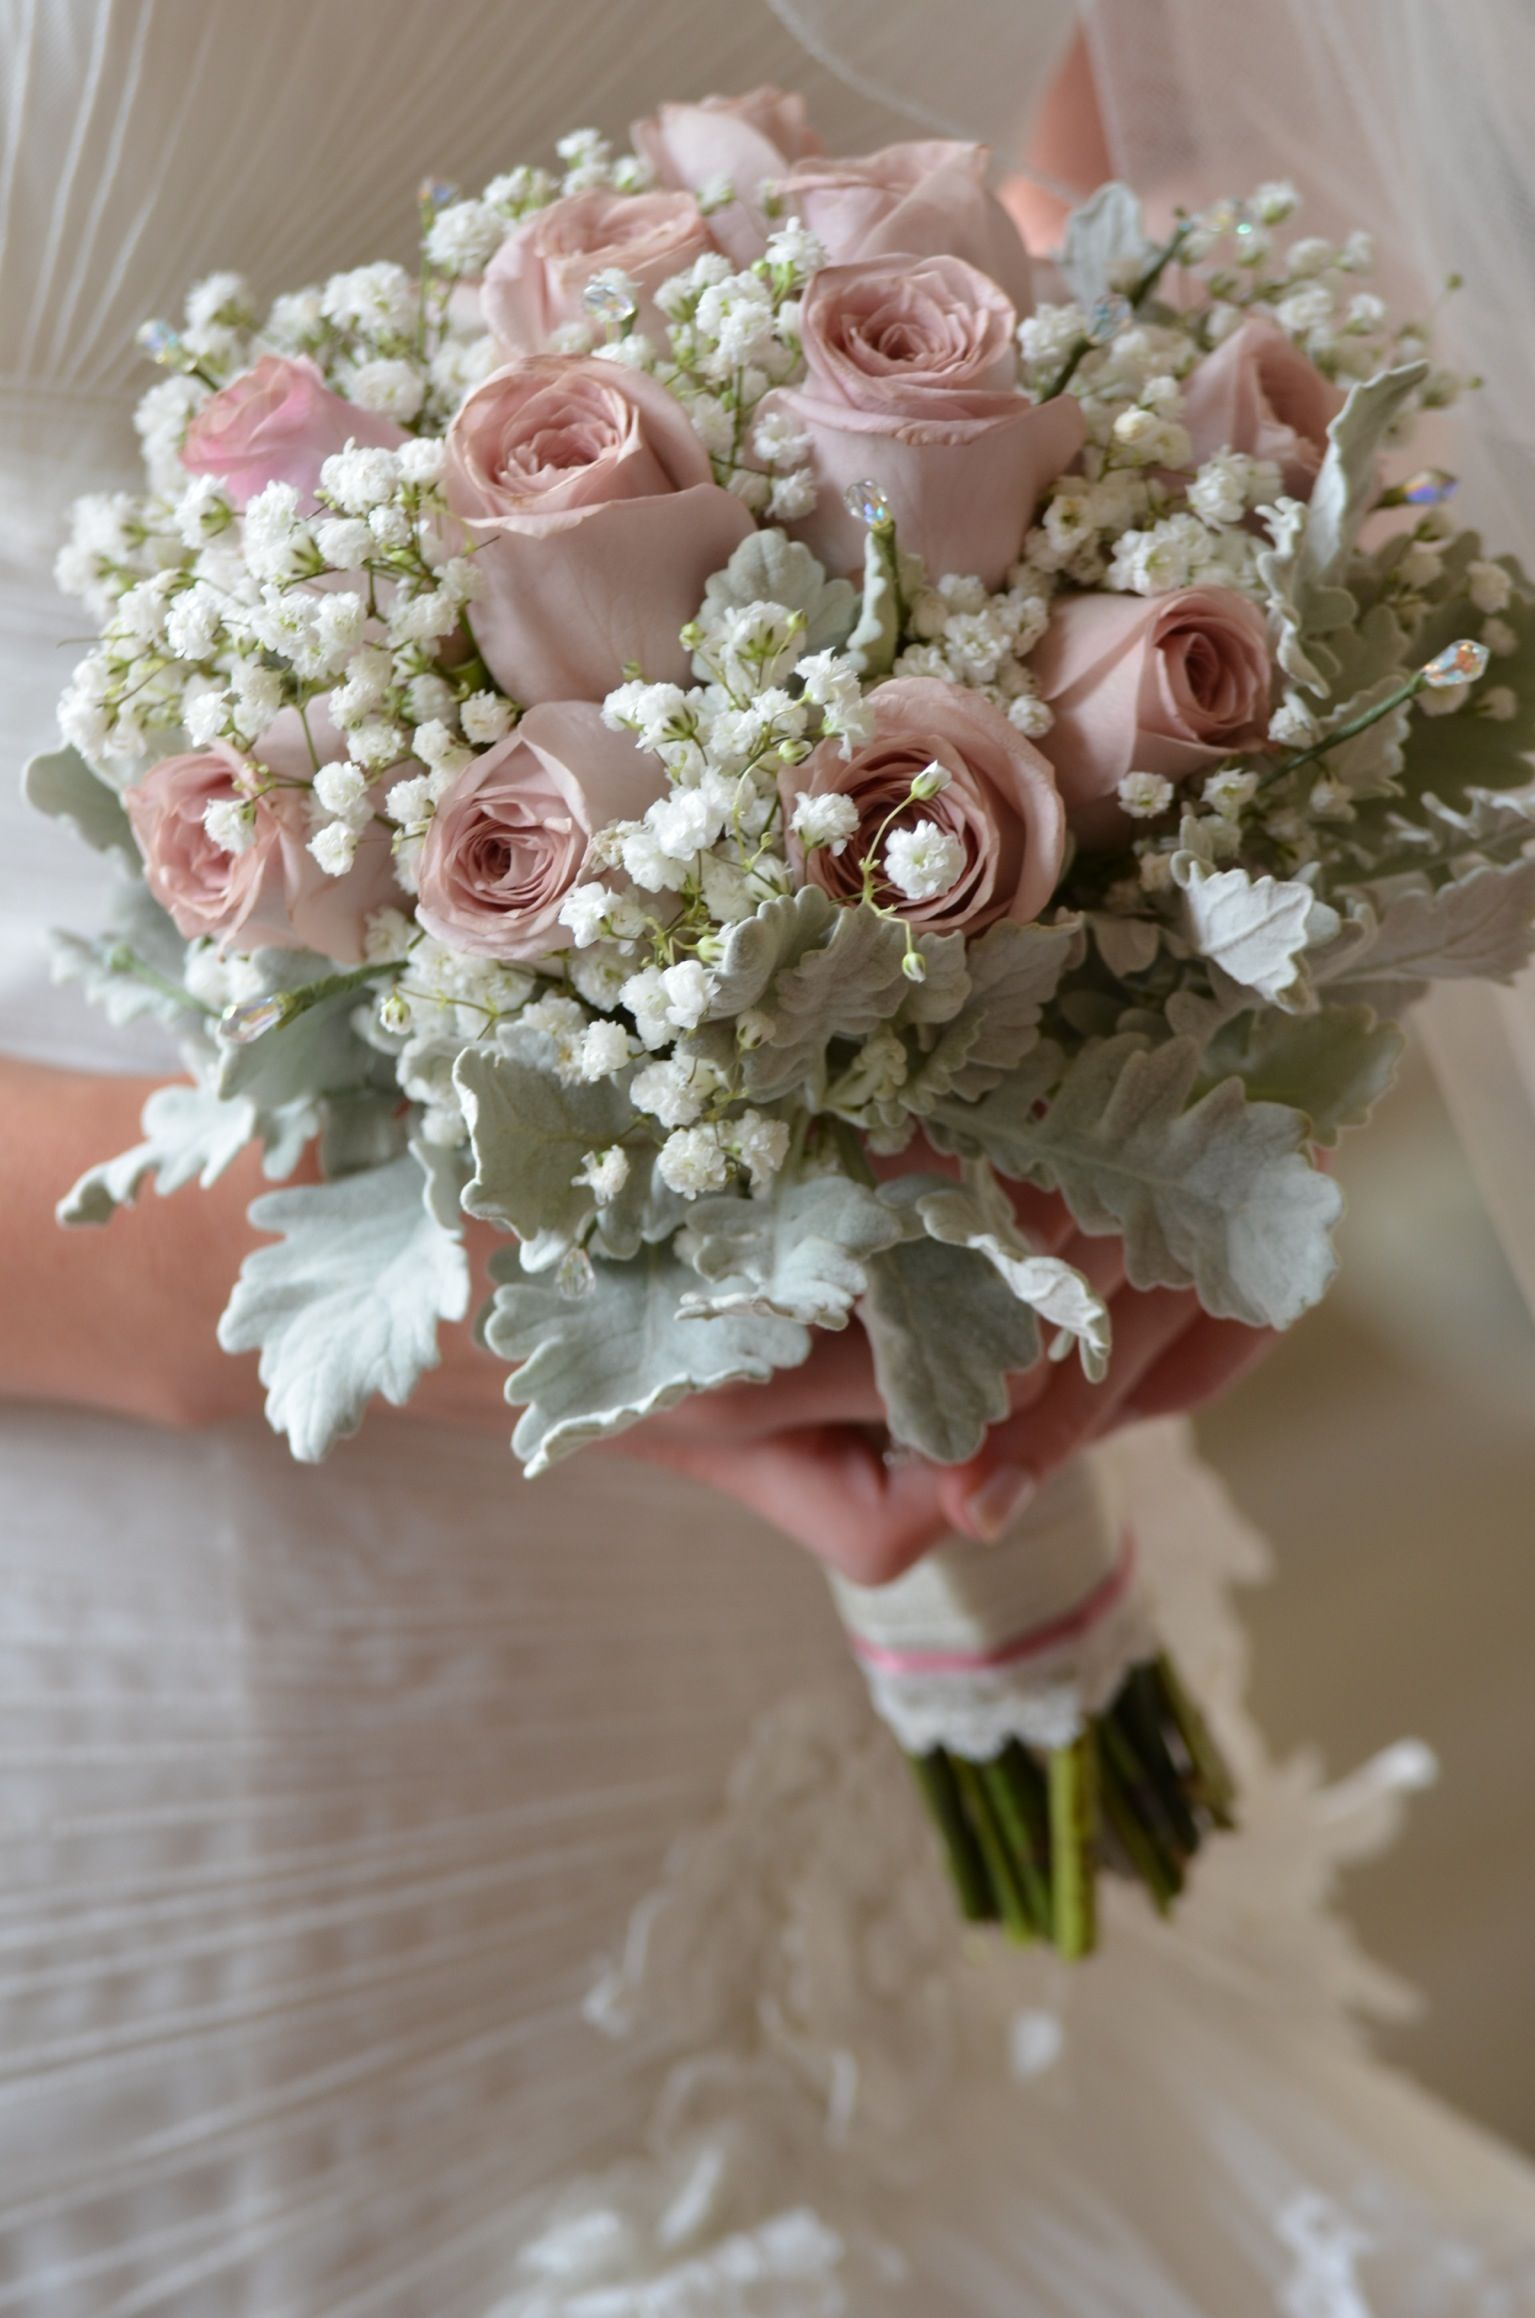 I want recipe dusty pink roses dusty miller gypsophillia recipe dusty pink roses dusty miller gypsophillia white satin ribbon wrapped in lace from the dress and vintage dusty pink ribbon mightylinksfo